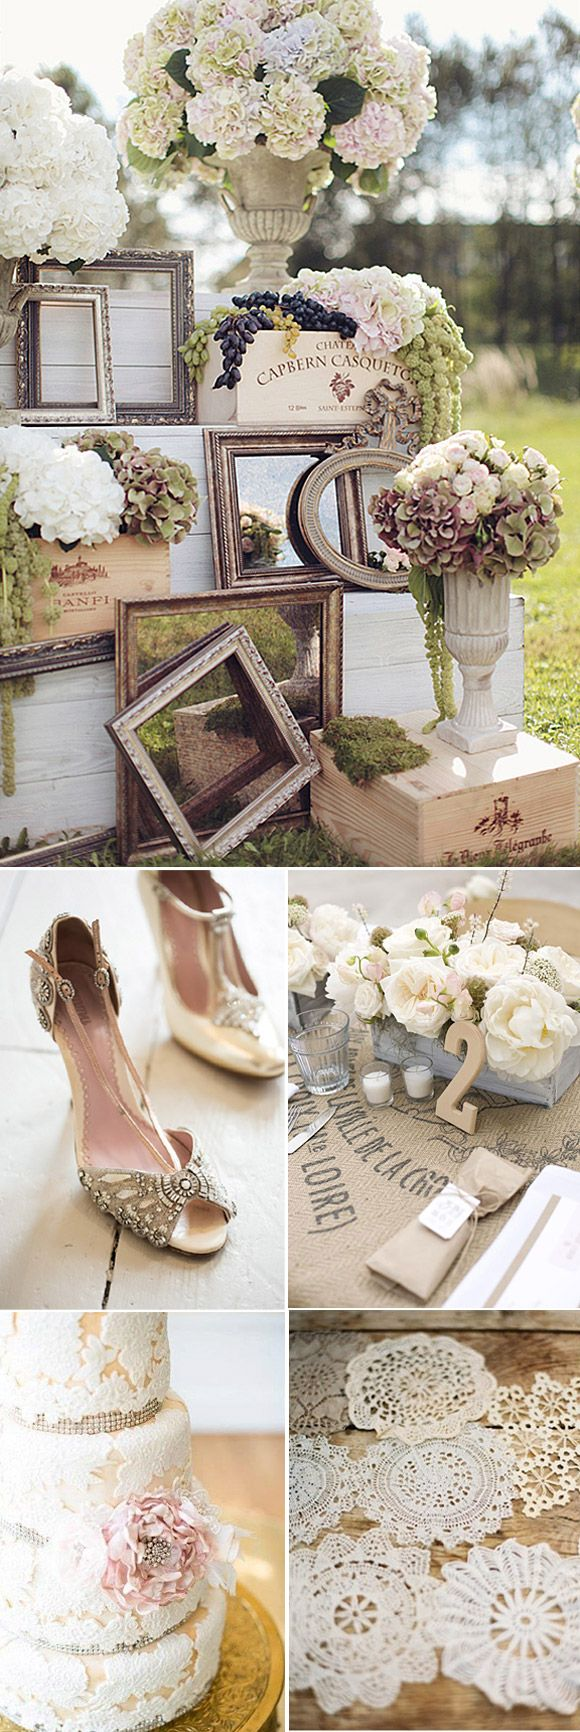 Vintage Decoracion Bodas ~ Explore Bodas Vintage Mesas, Vintage Wedding, and more!